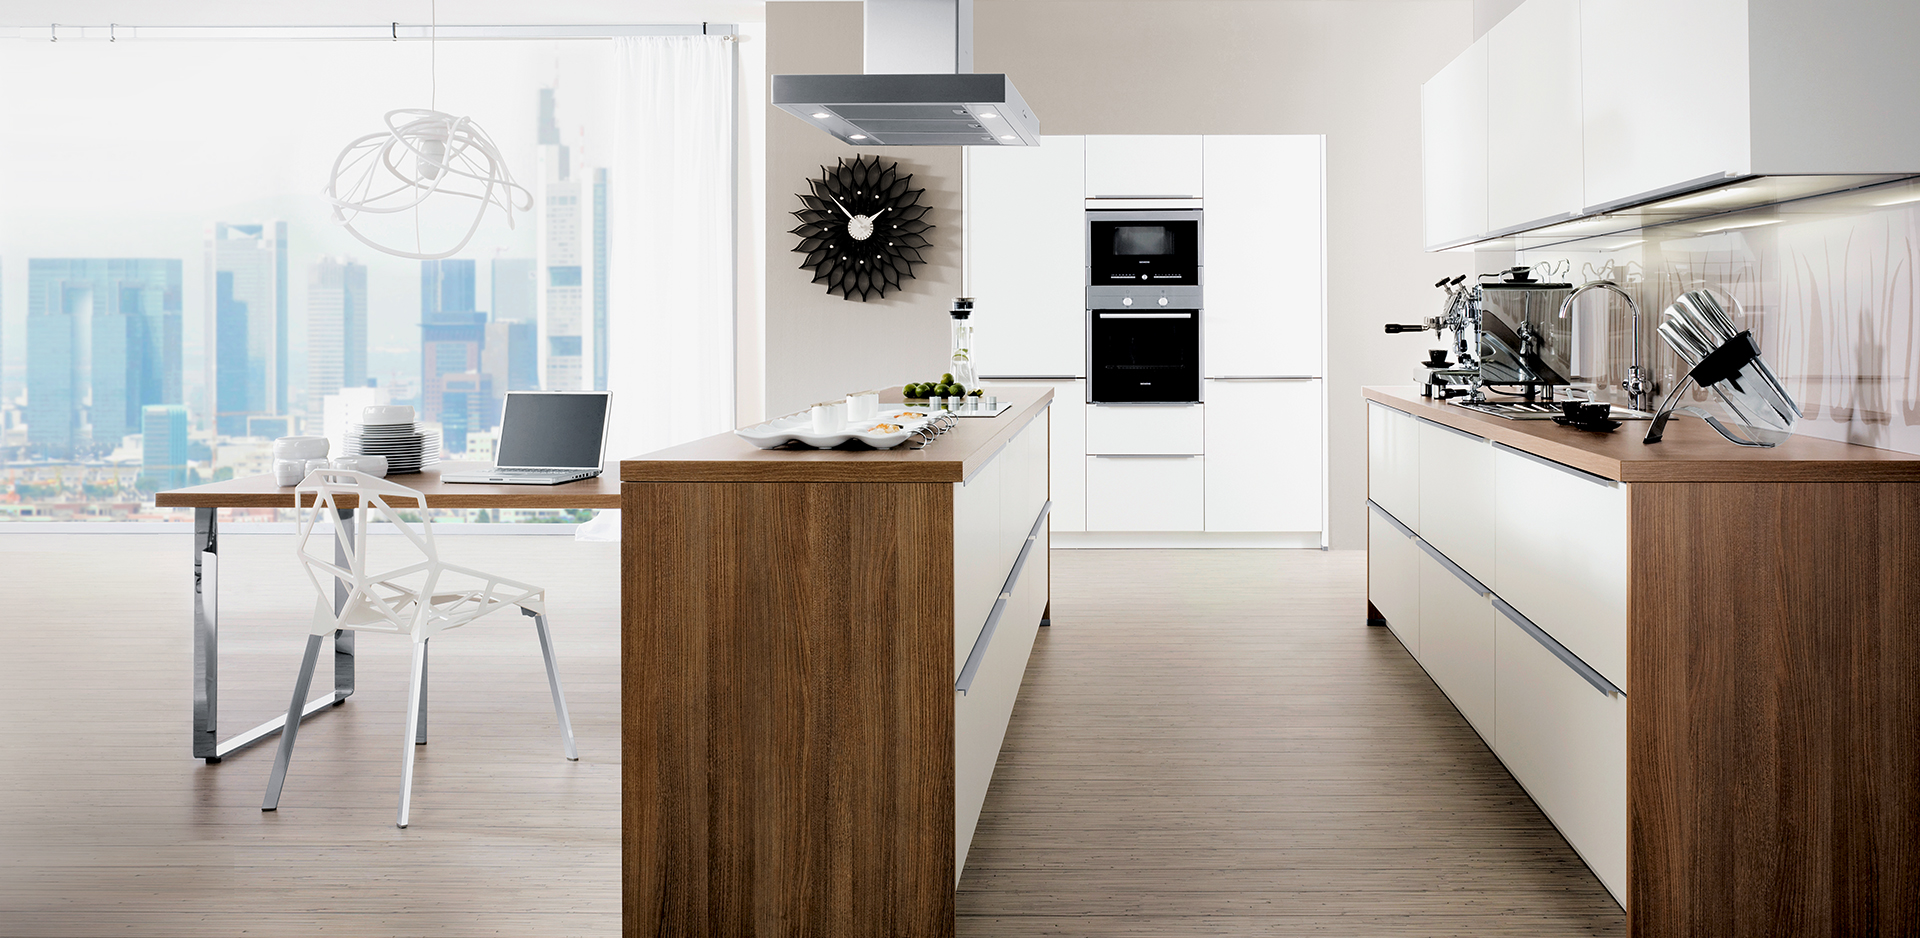 Kitchen Appliances Suppliers In Dubai